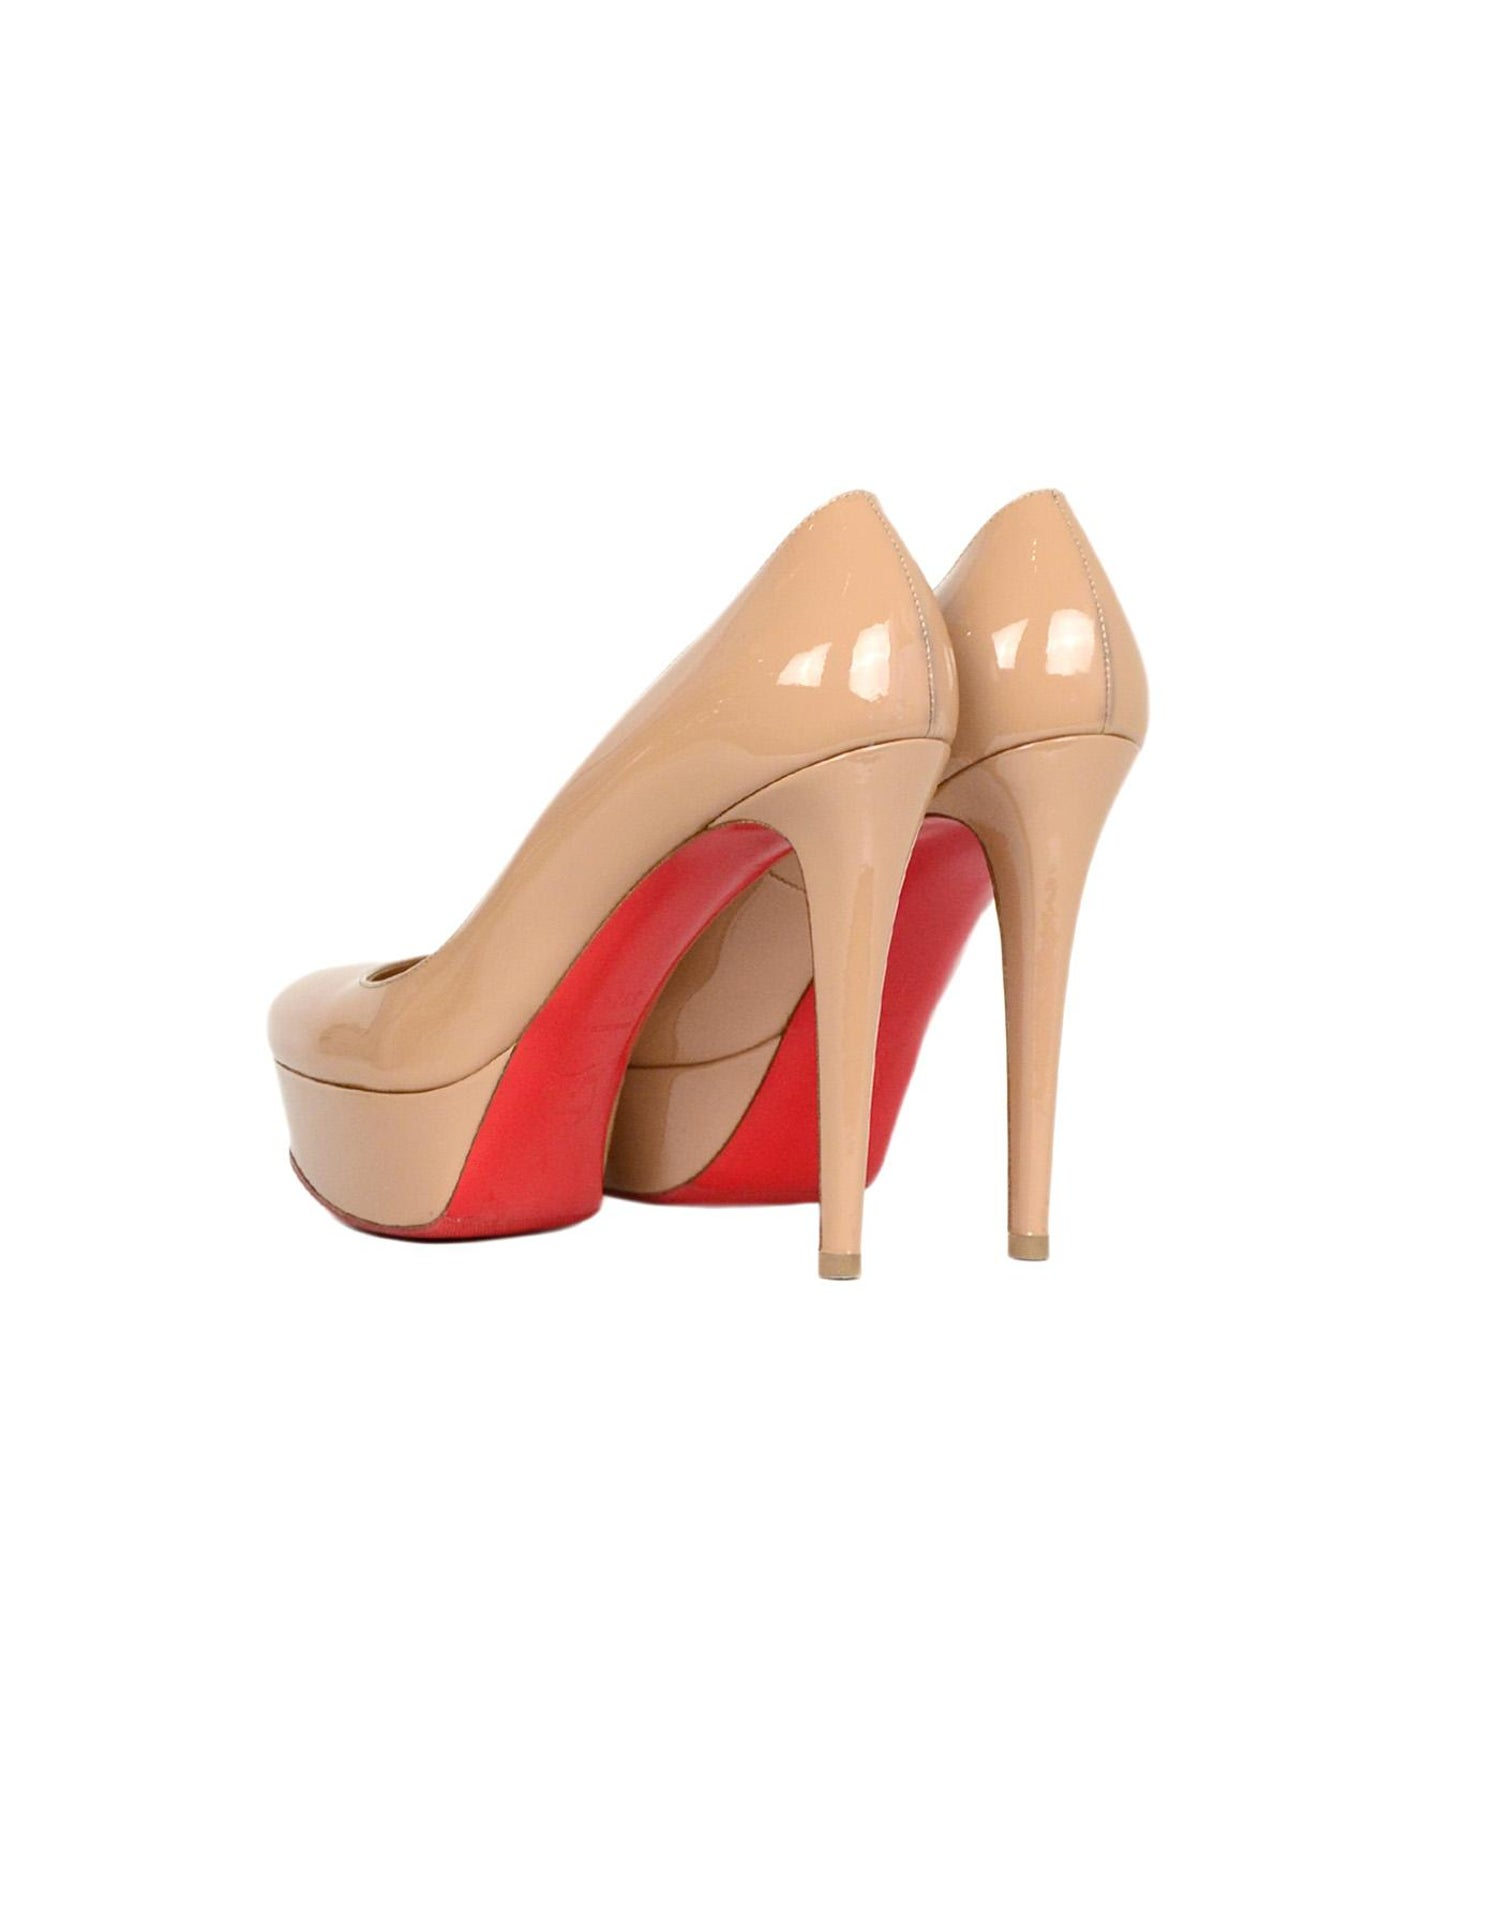 7e62f0dd2 Christian Louboutin Nude Patent Leather Bianca 140 Platform Pumps sz 39.5  For Sale at 1stdibs